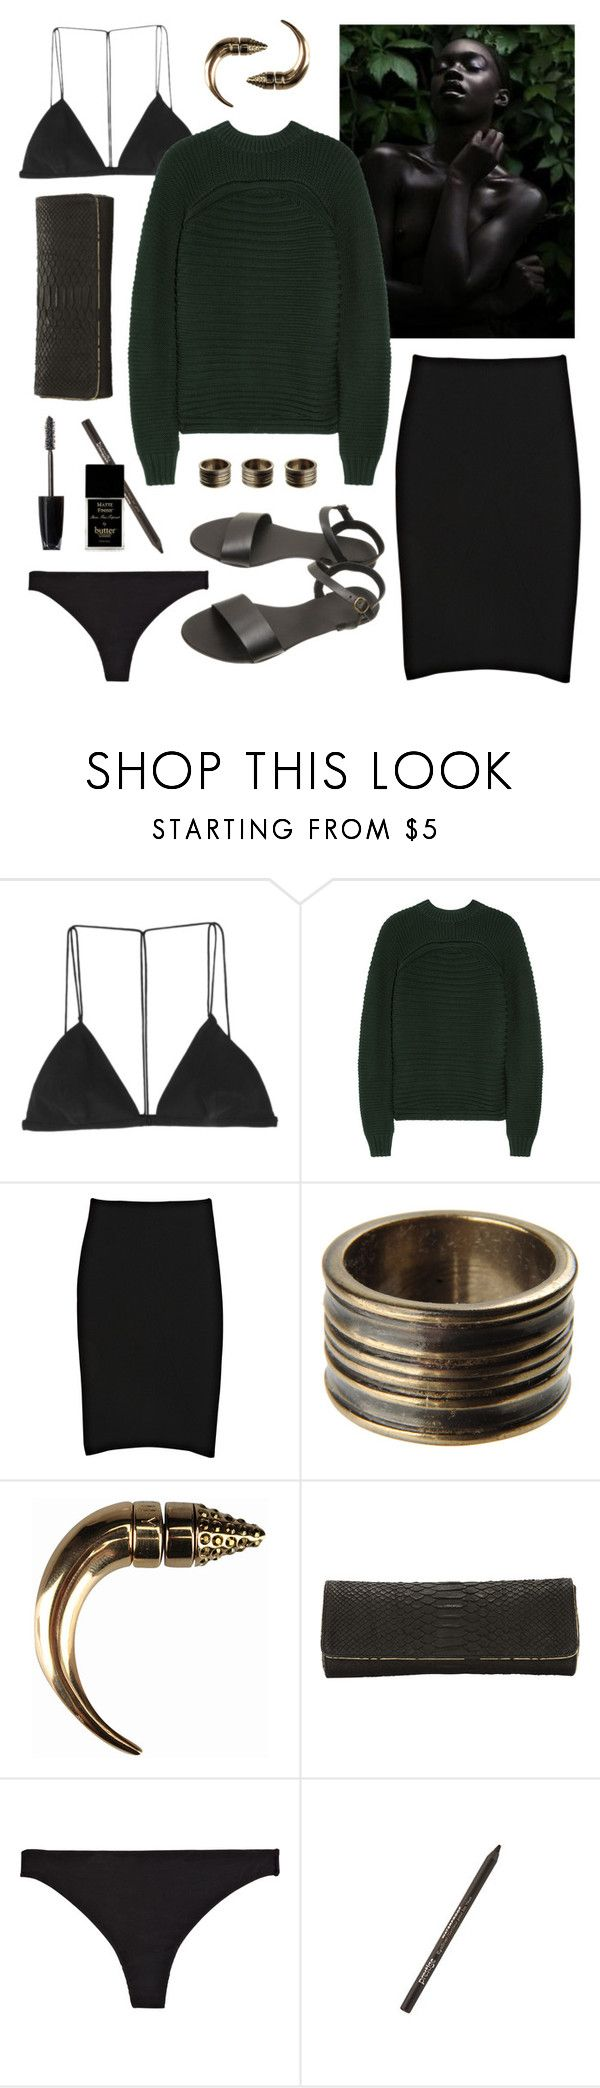 """""""Untitled #1541"""" by doxophobia ❤ liked on Polyvore featuring Dion Lee, Alexander Wang, McQ by Alexander McQueen, Maison Margiela, Givenchy, JLynch, Donna Karan, ULTA and Butter London"""